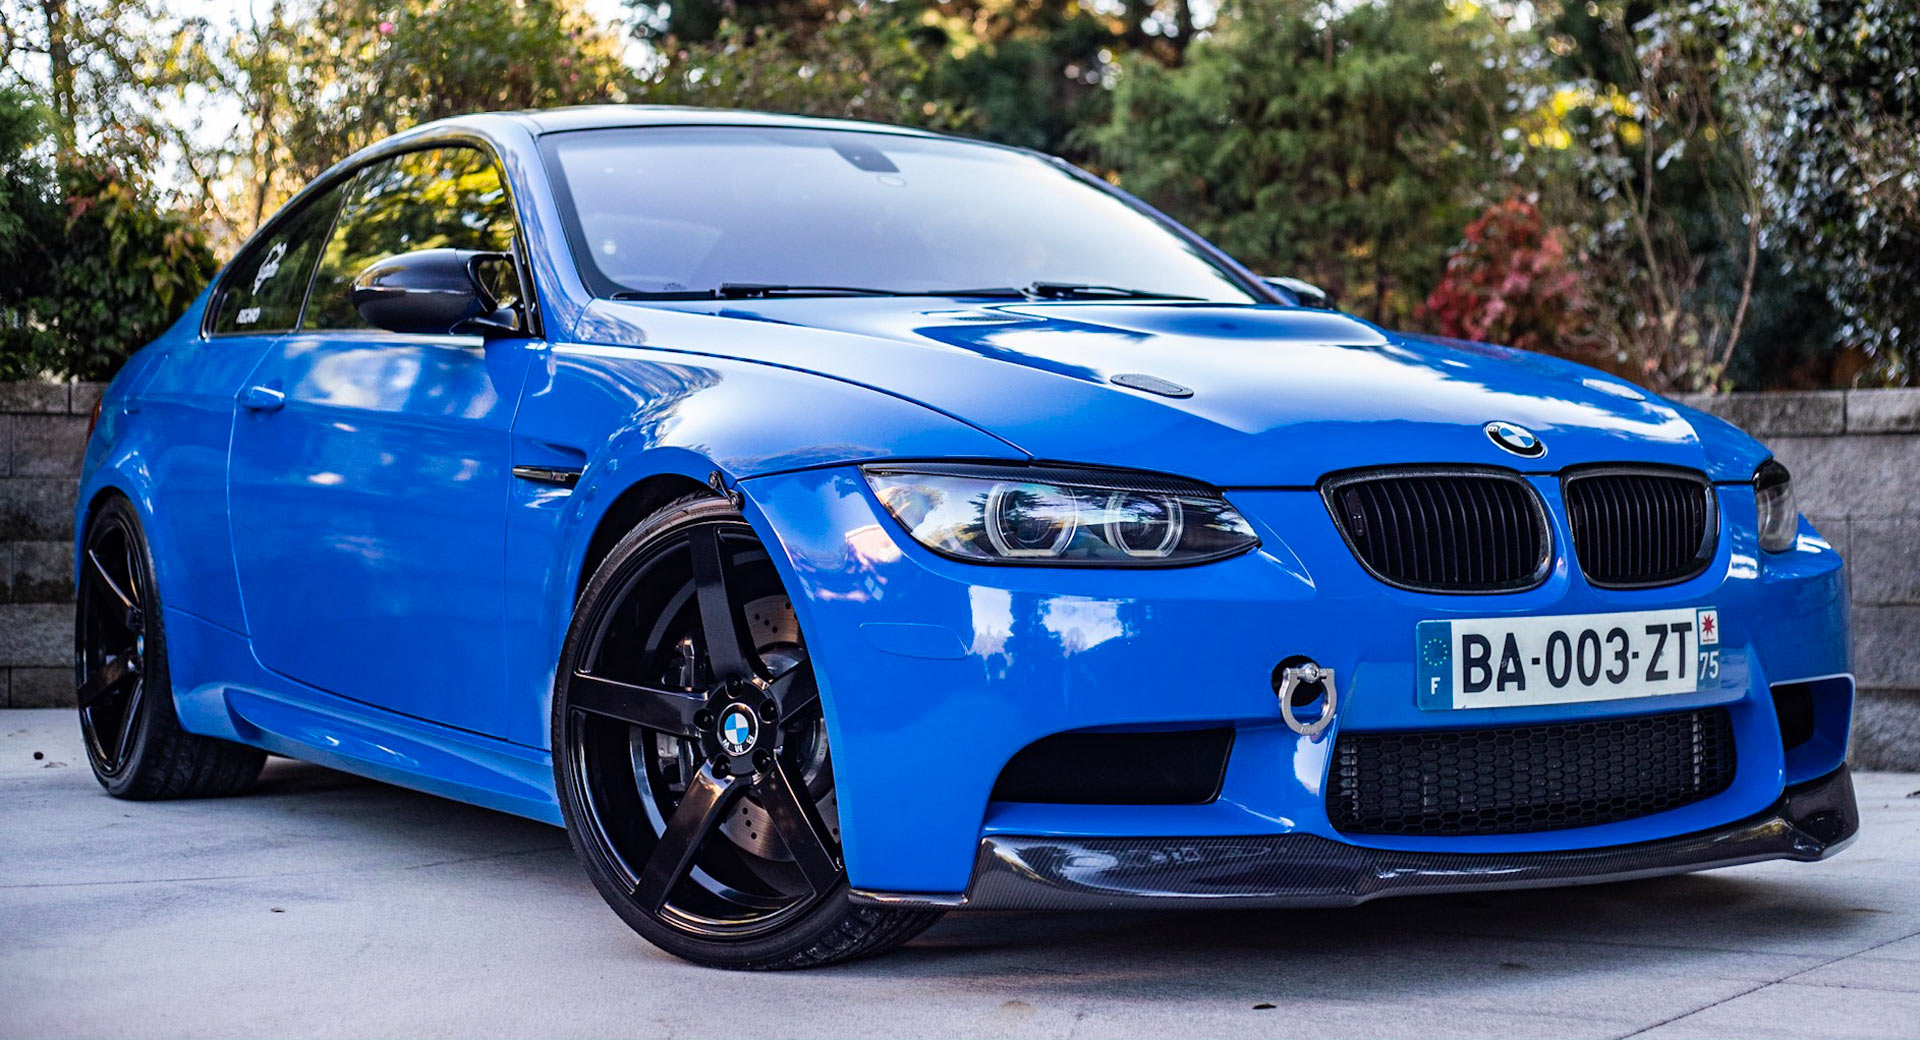 Supercharged 2011 Bmw M3 Competition Is A Blue Gem If Aftermarket Mods Is Your Thing Carscoops